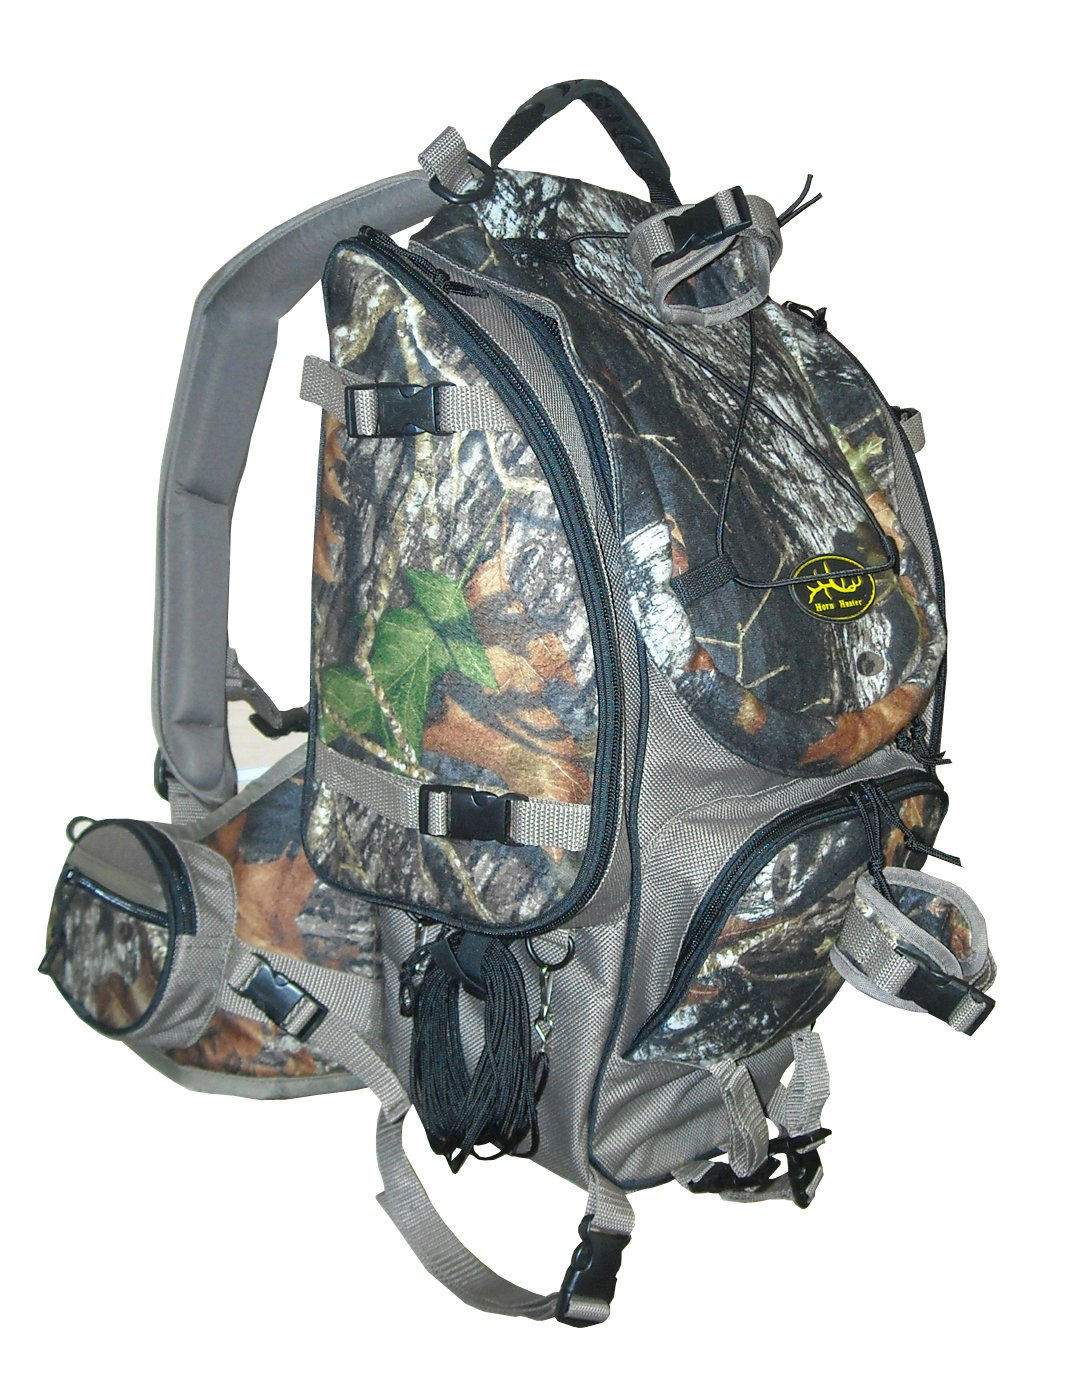 Sportsman's Outdoor Products Horn Hunter G3 Treestand Pack (APG Realtree)